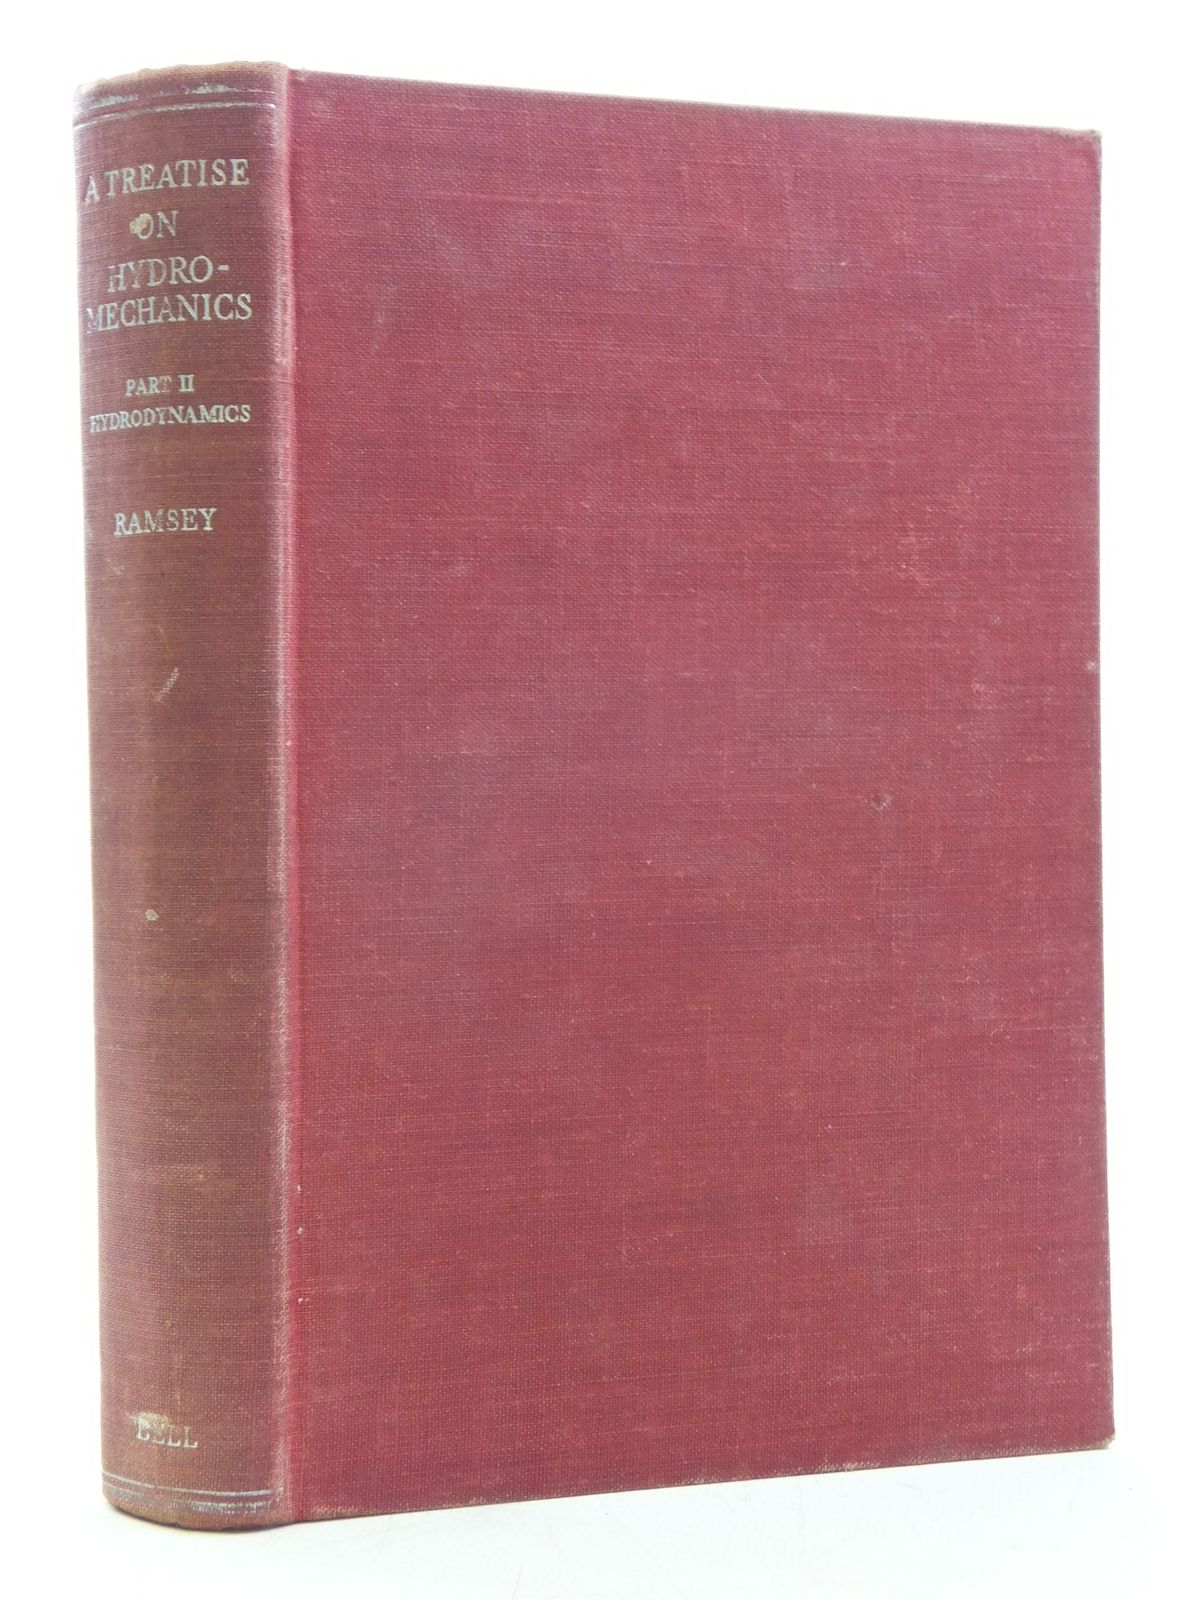 Photo of A TREATISE ON HYDROMECHANICS PART II HYDRODYNAMICS- Stock Number: 2119591